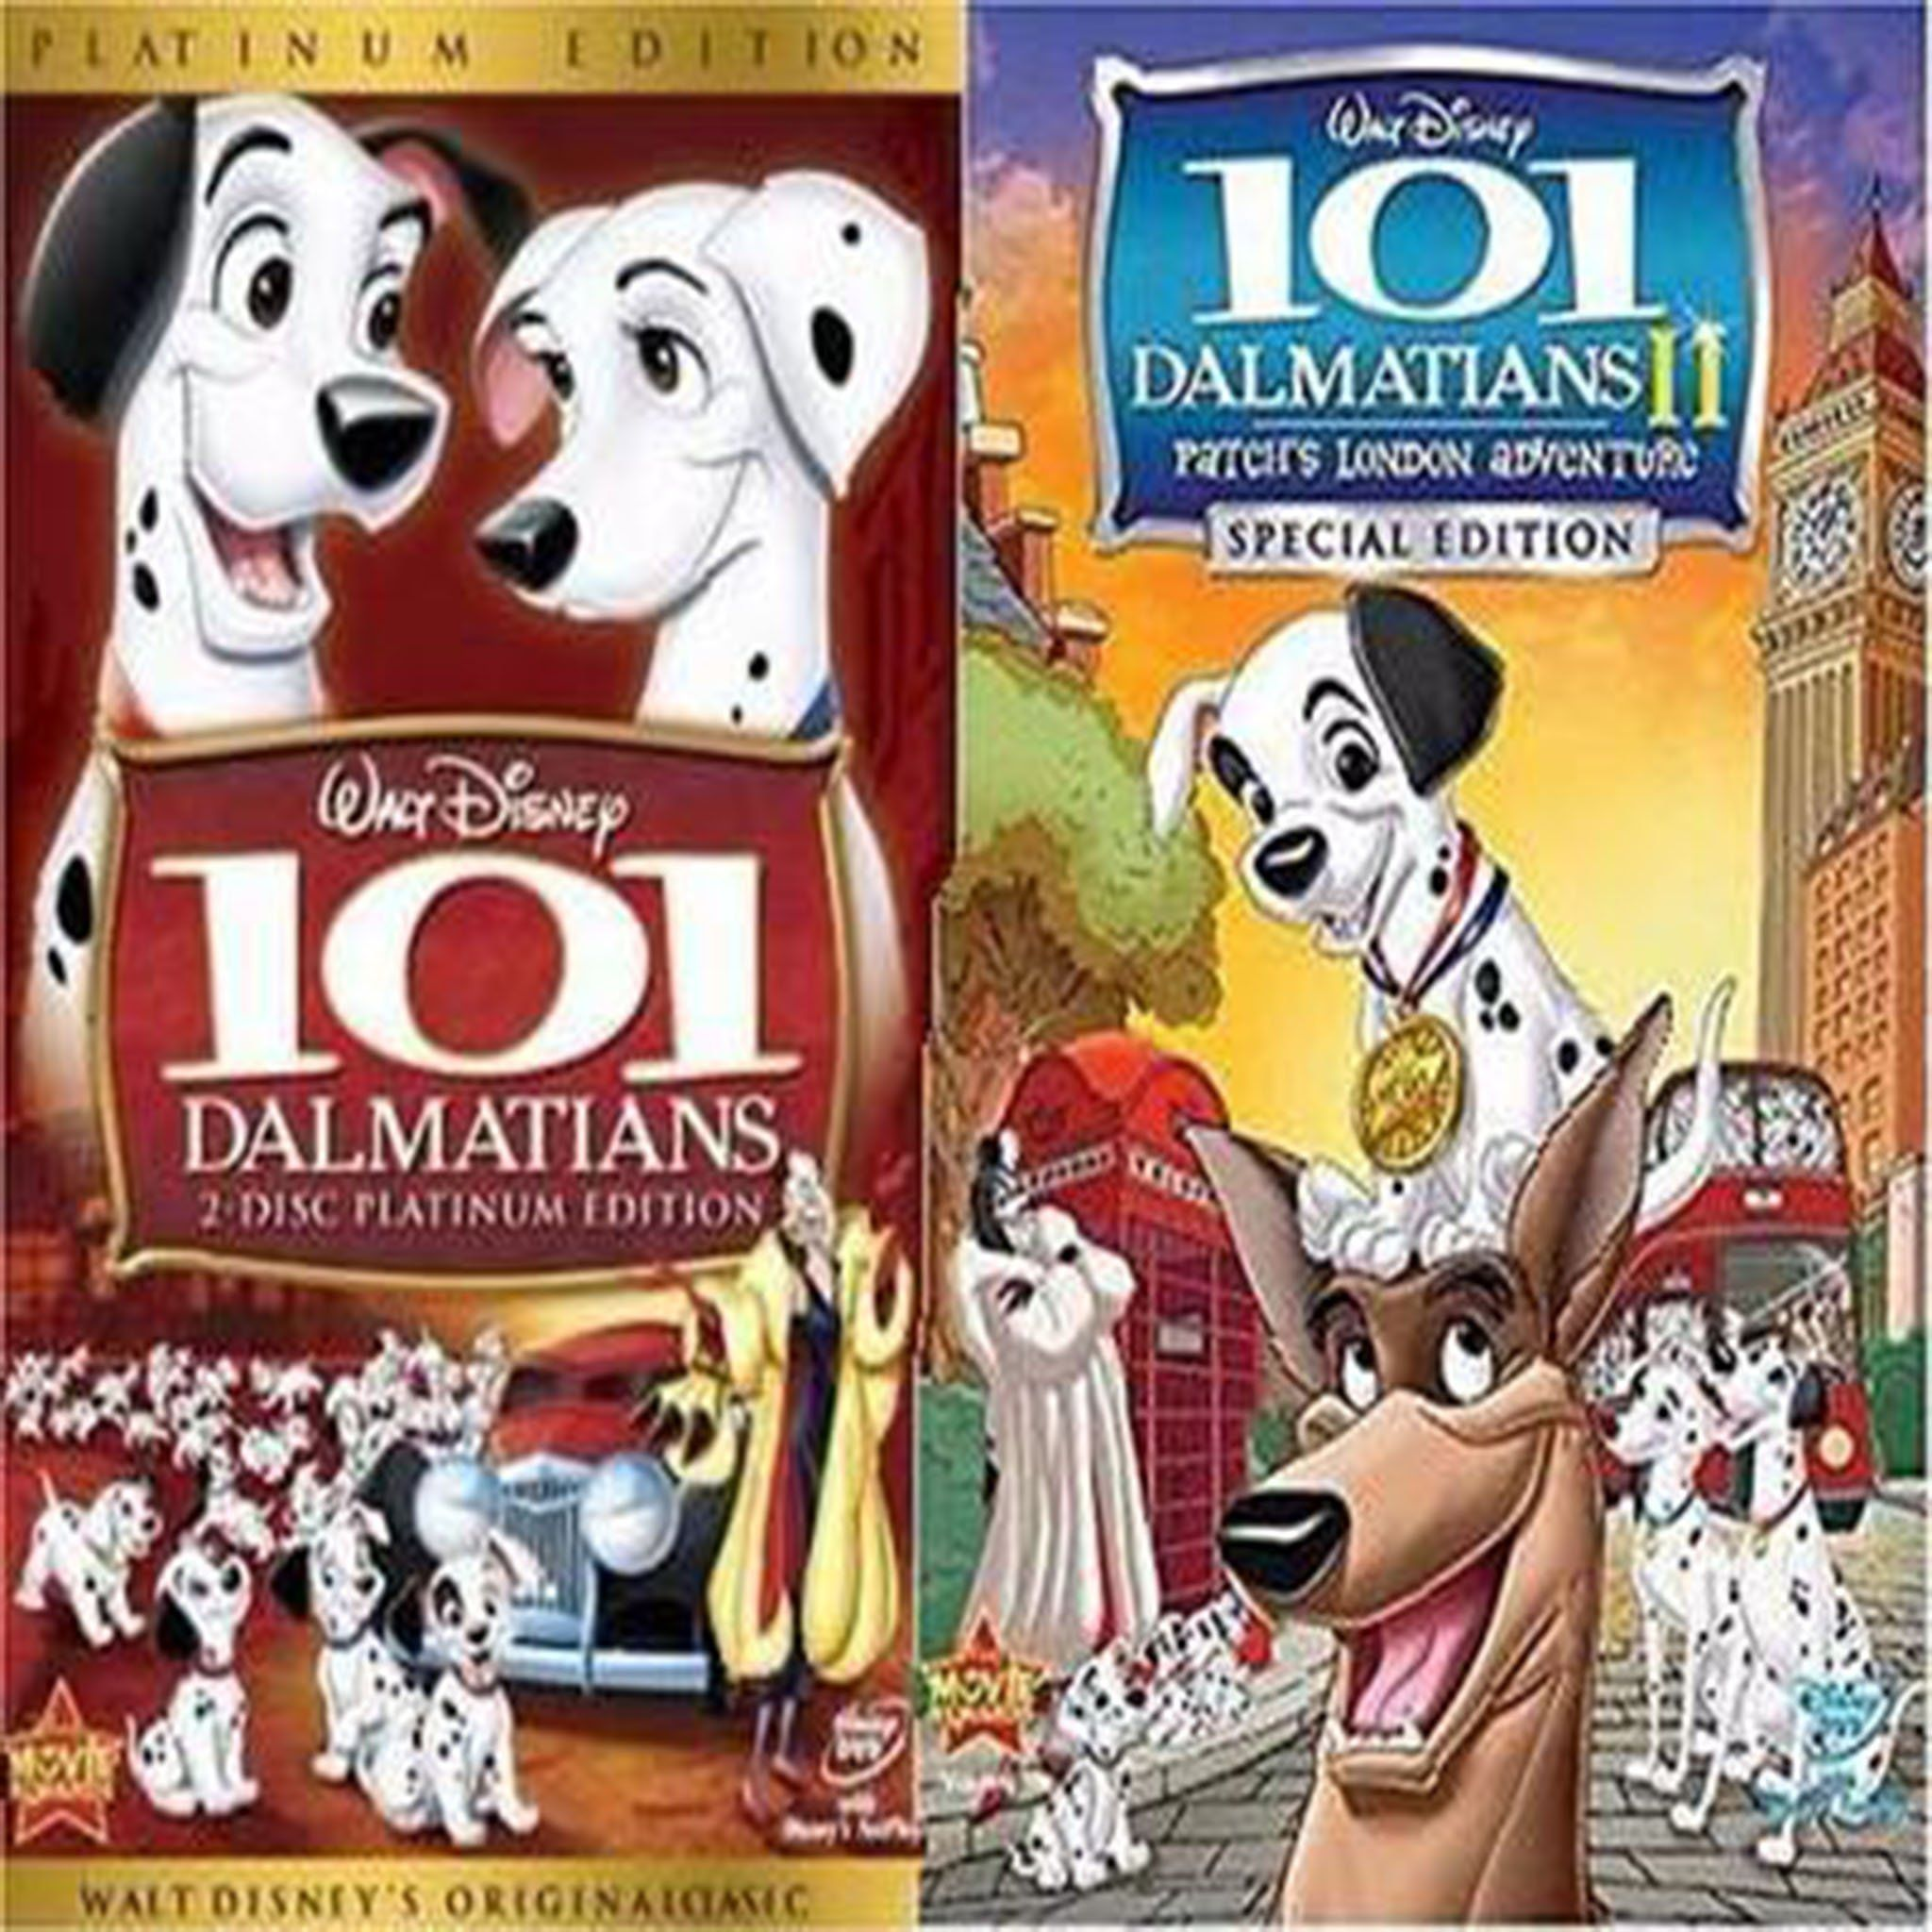 Disney S 101 Dalmatians 1 2 Dvd Set Includes Both Animated Movies